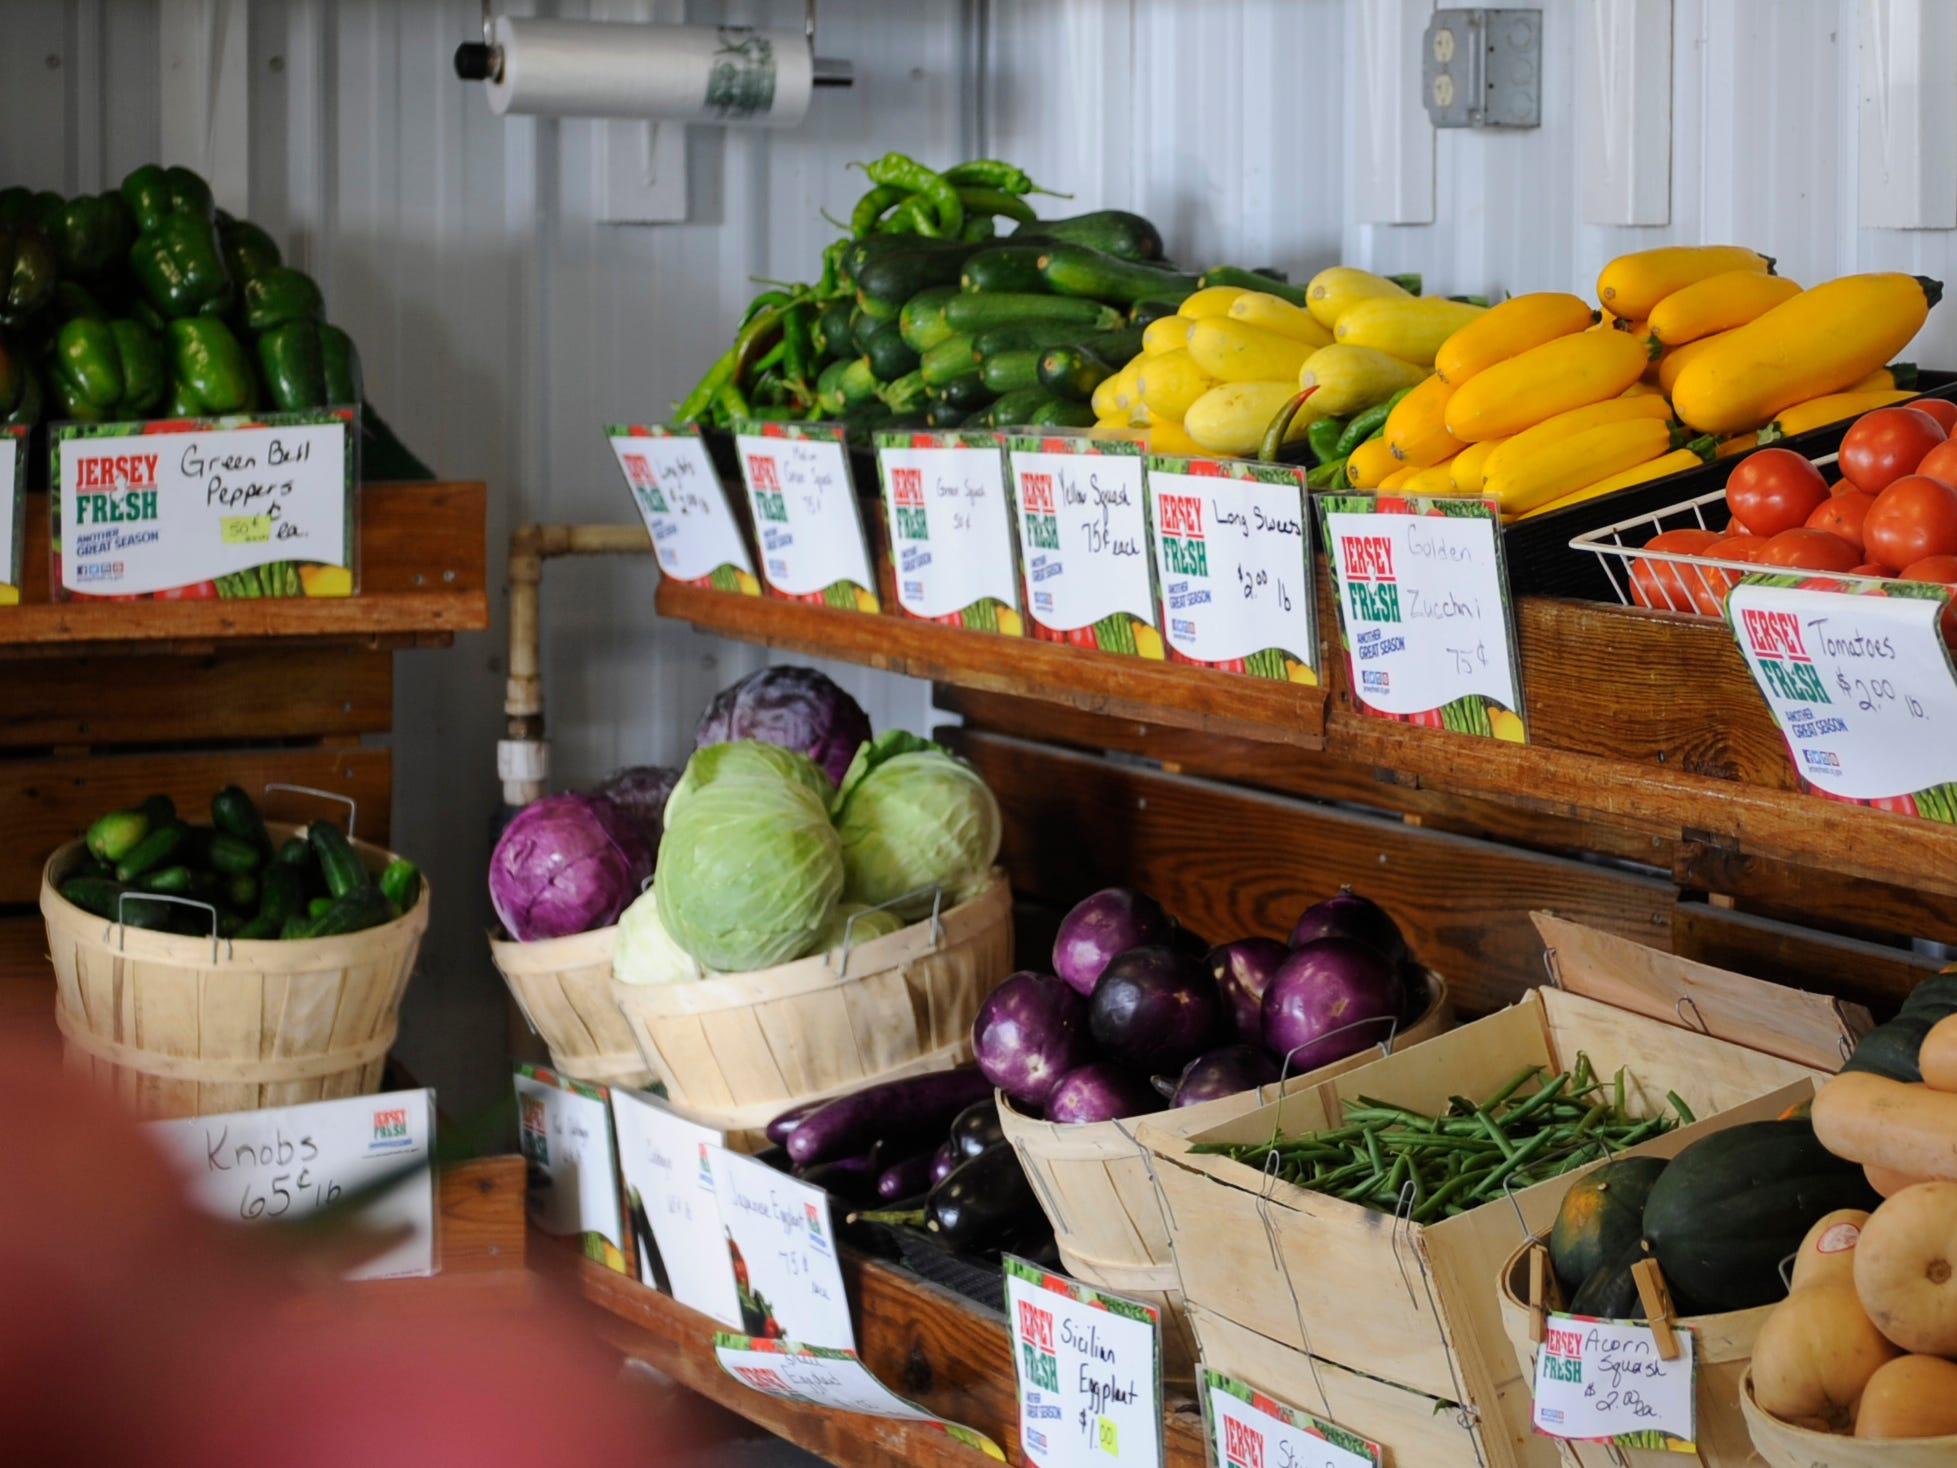 Muzzarelli Farms on East Oak Road in Vineland sells a large variety of fresh fall produce.